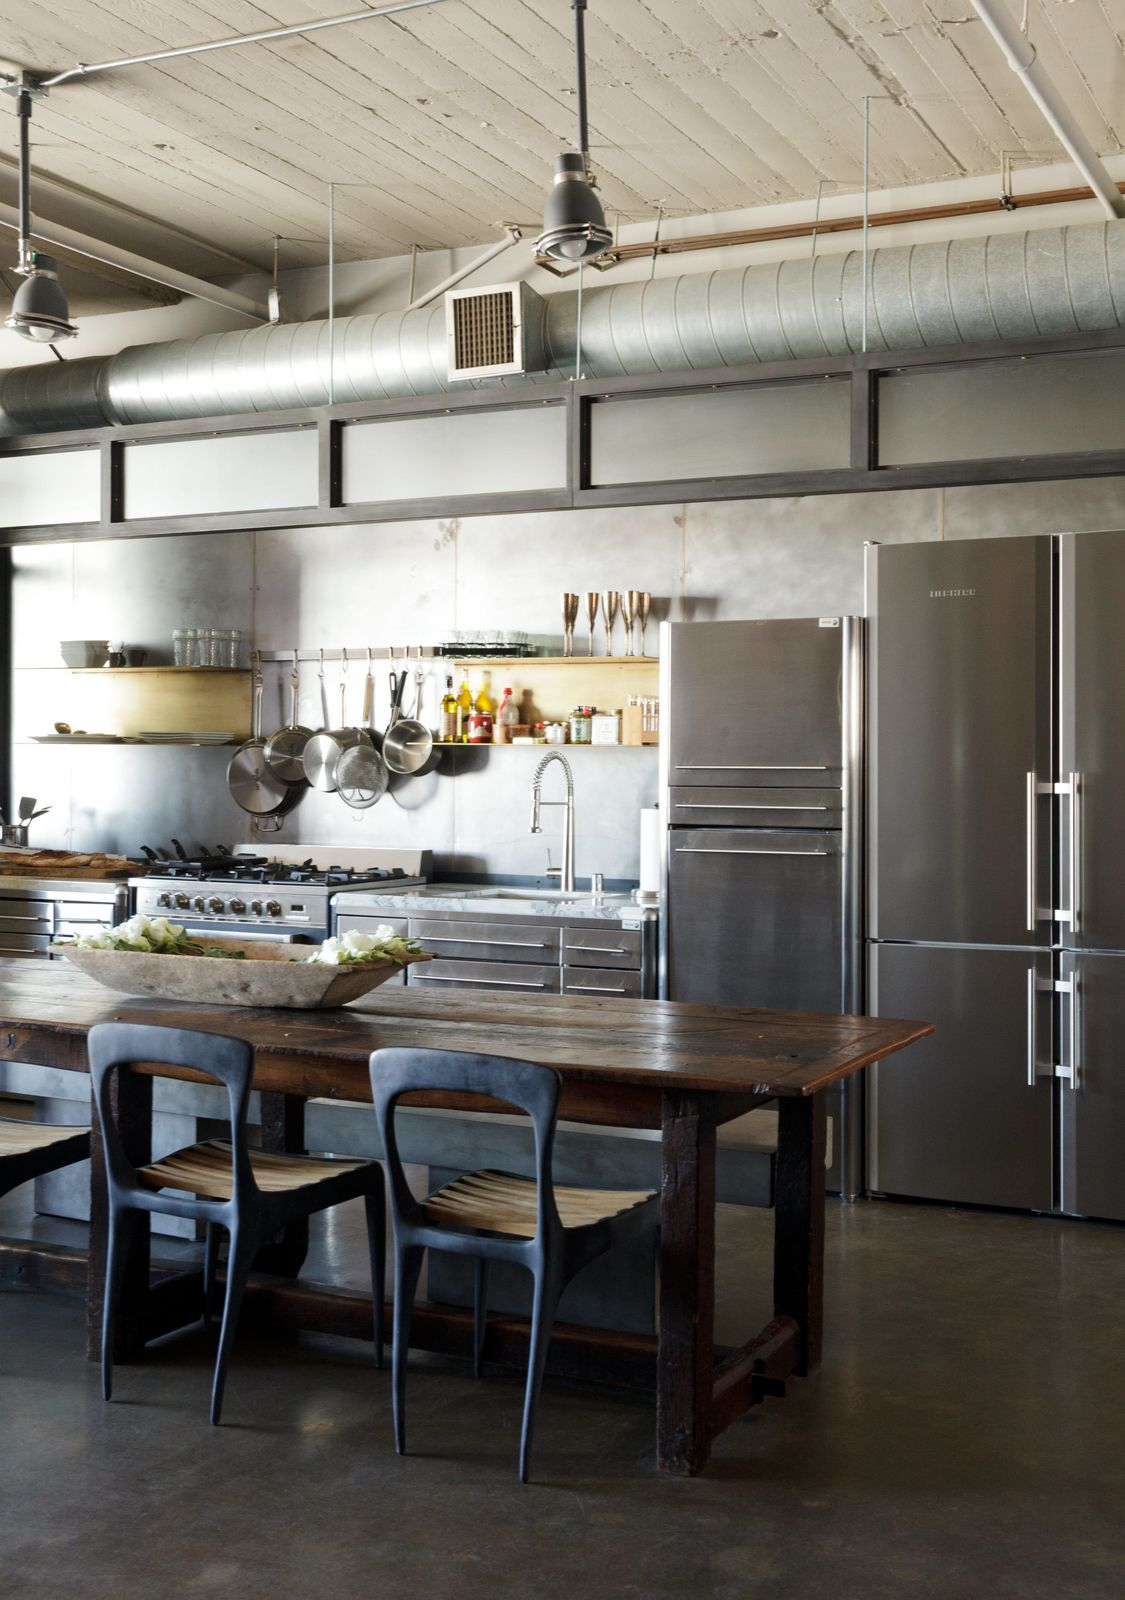 In a loft renovated by designer andrea michaelson a liebherr refrigerator blends in with stainless steel cabinets from fagor featuring calacatta paonazzo